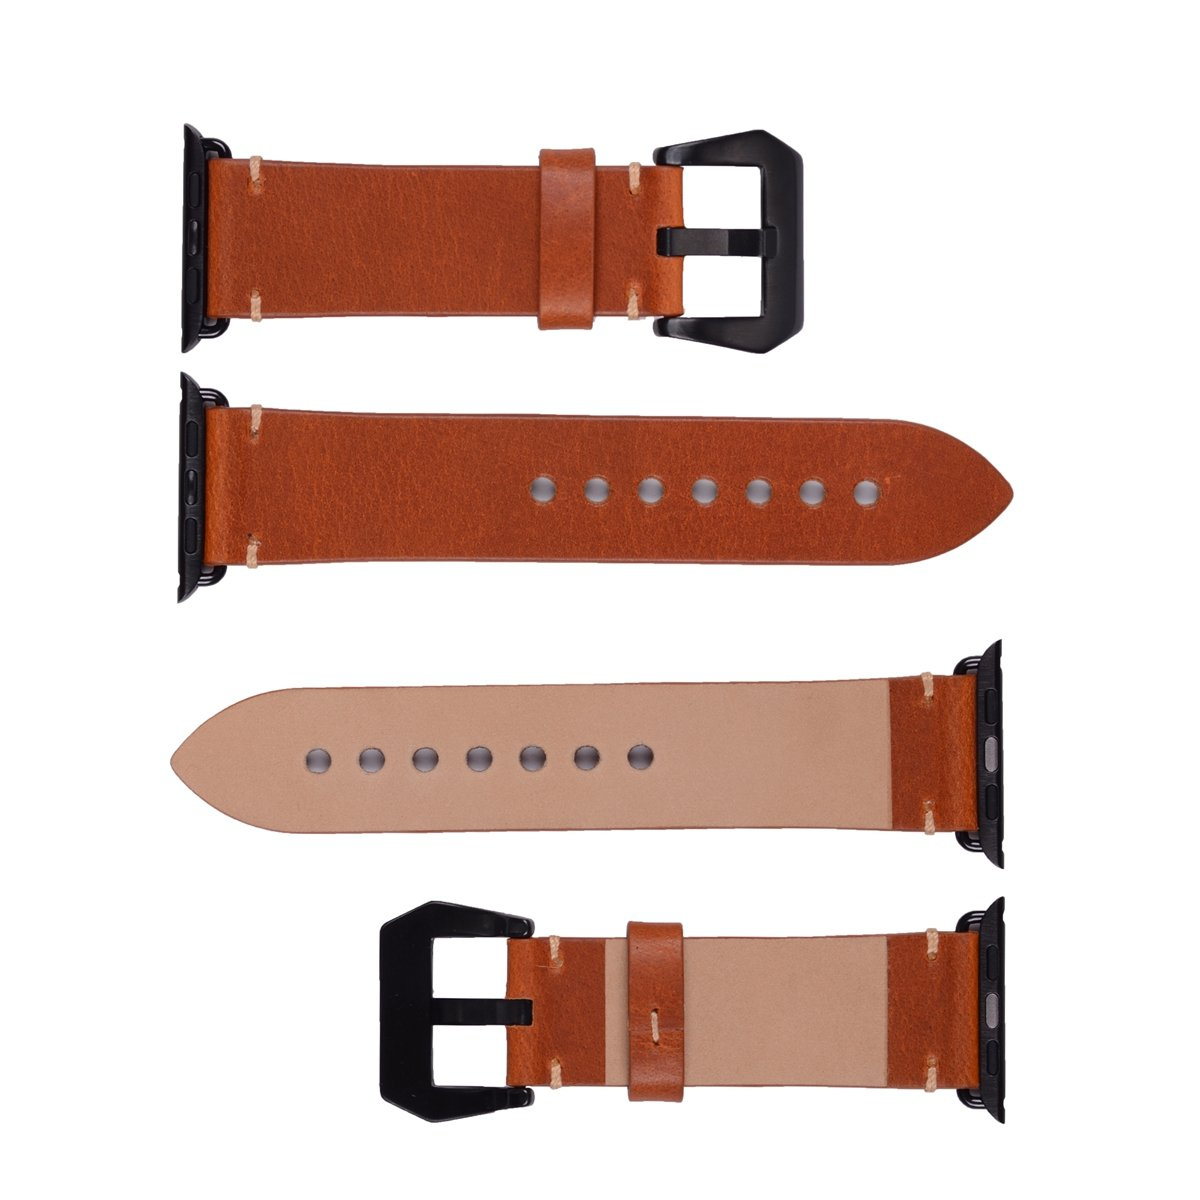 Apple Watch Band ,Vintage Vegetable Tanned Leather Watch Band For I Watch 42mm With Black Adaptor Light Brown 4